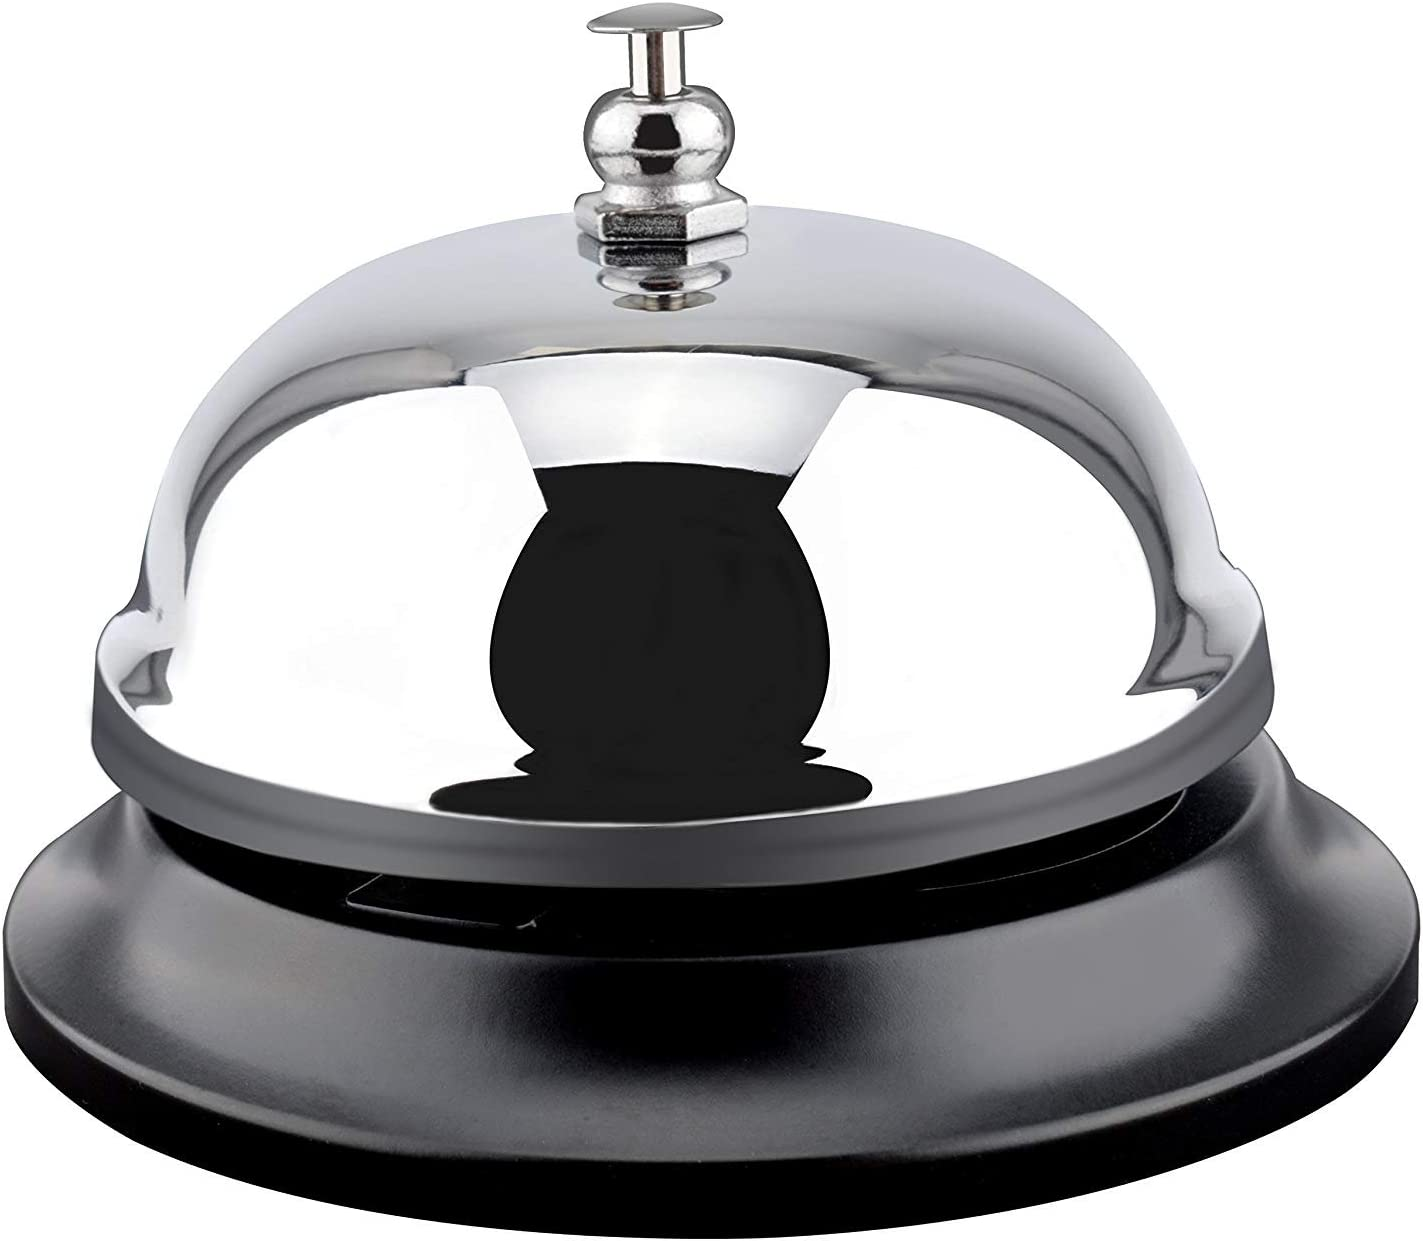 MROCO Big Call Bells, 3.38 Inch Diameter, Chrome Finish, All-Metal Construction, Desk Bell Service Bell for Hotels, Schools, Restaurants, Reception Areas, Hospitals, Warehouses (Silver) : Office Products